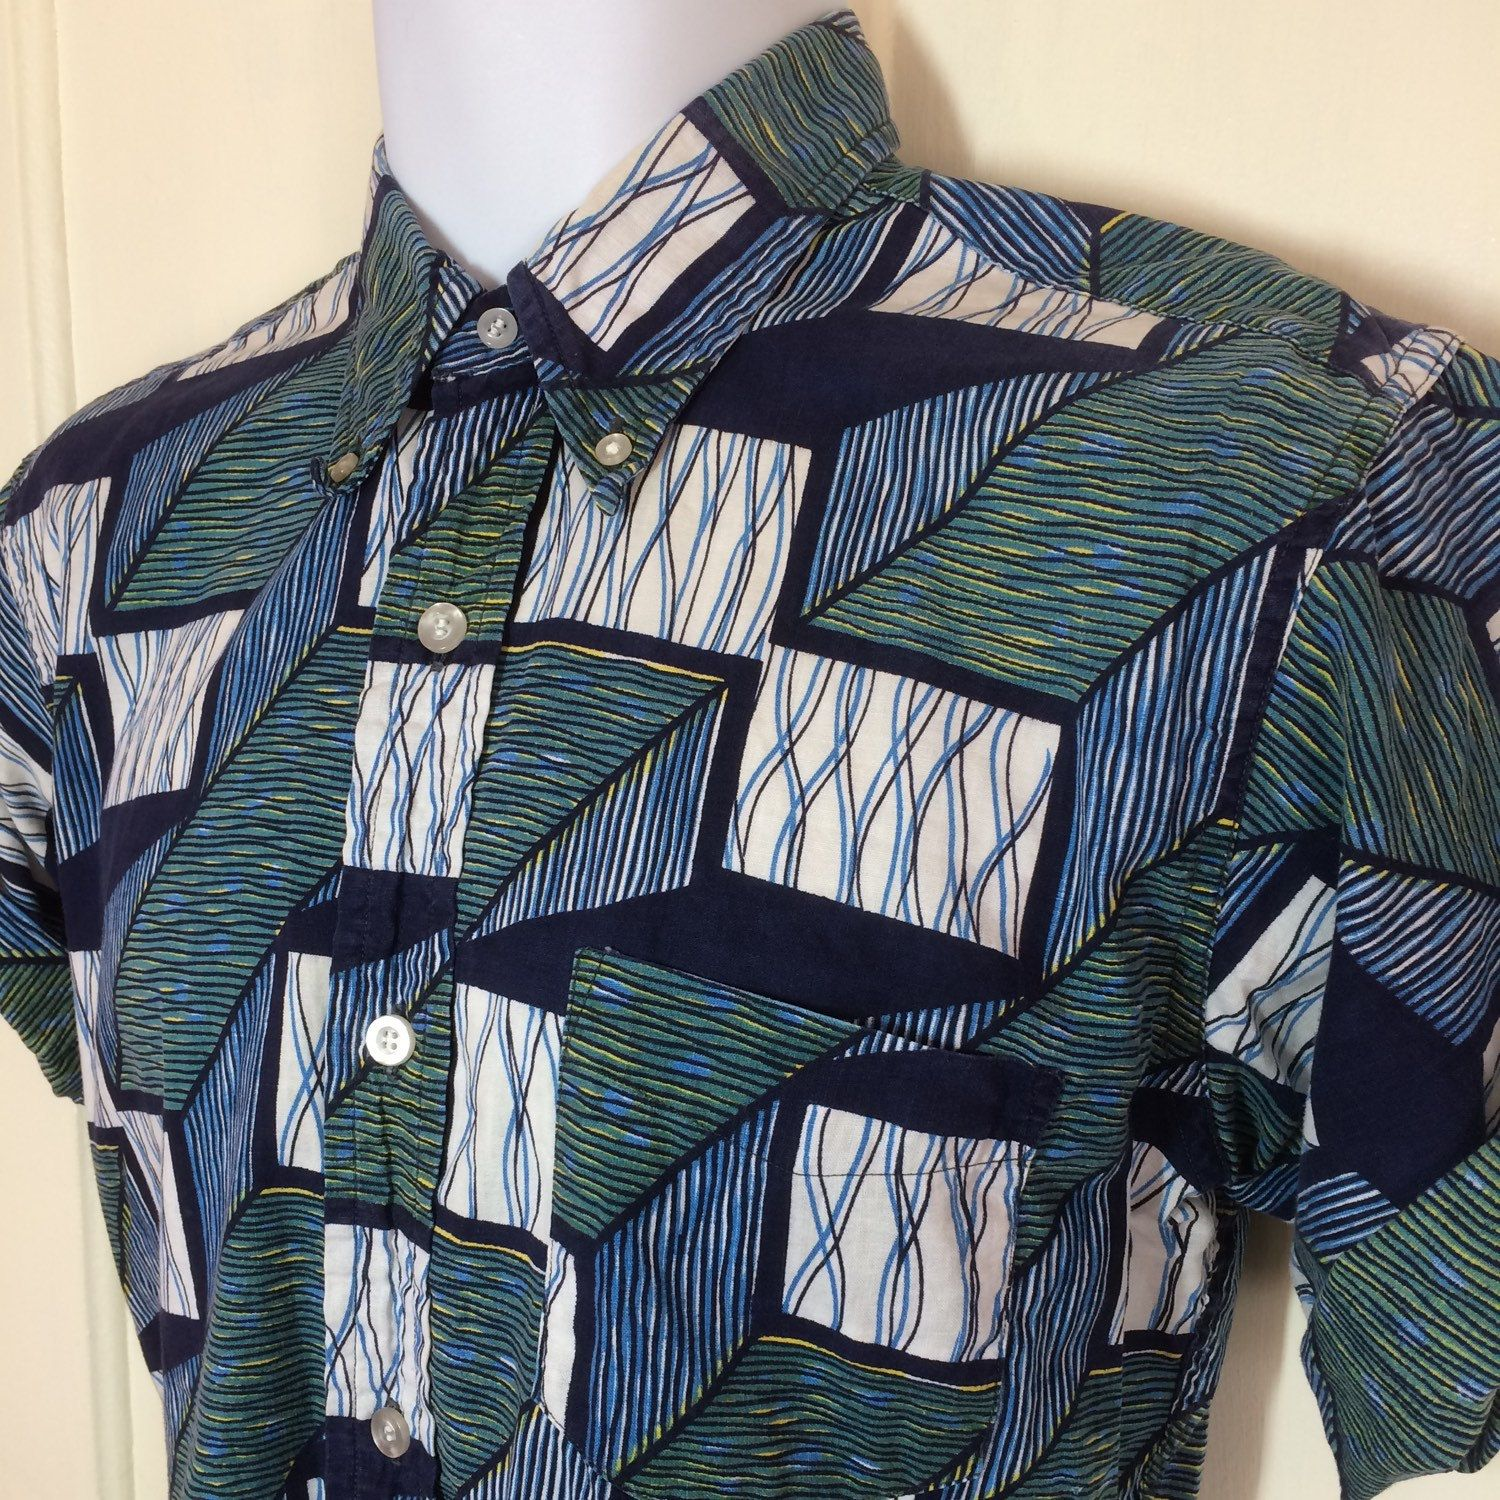 1960s Abstract Batik Patterned Button Down Collar Short